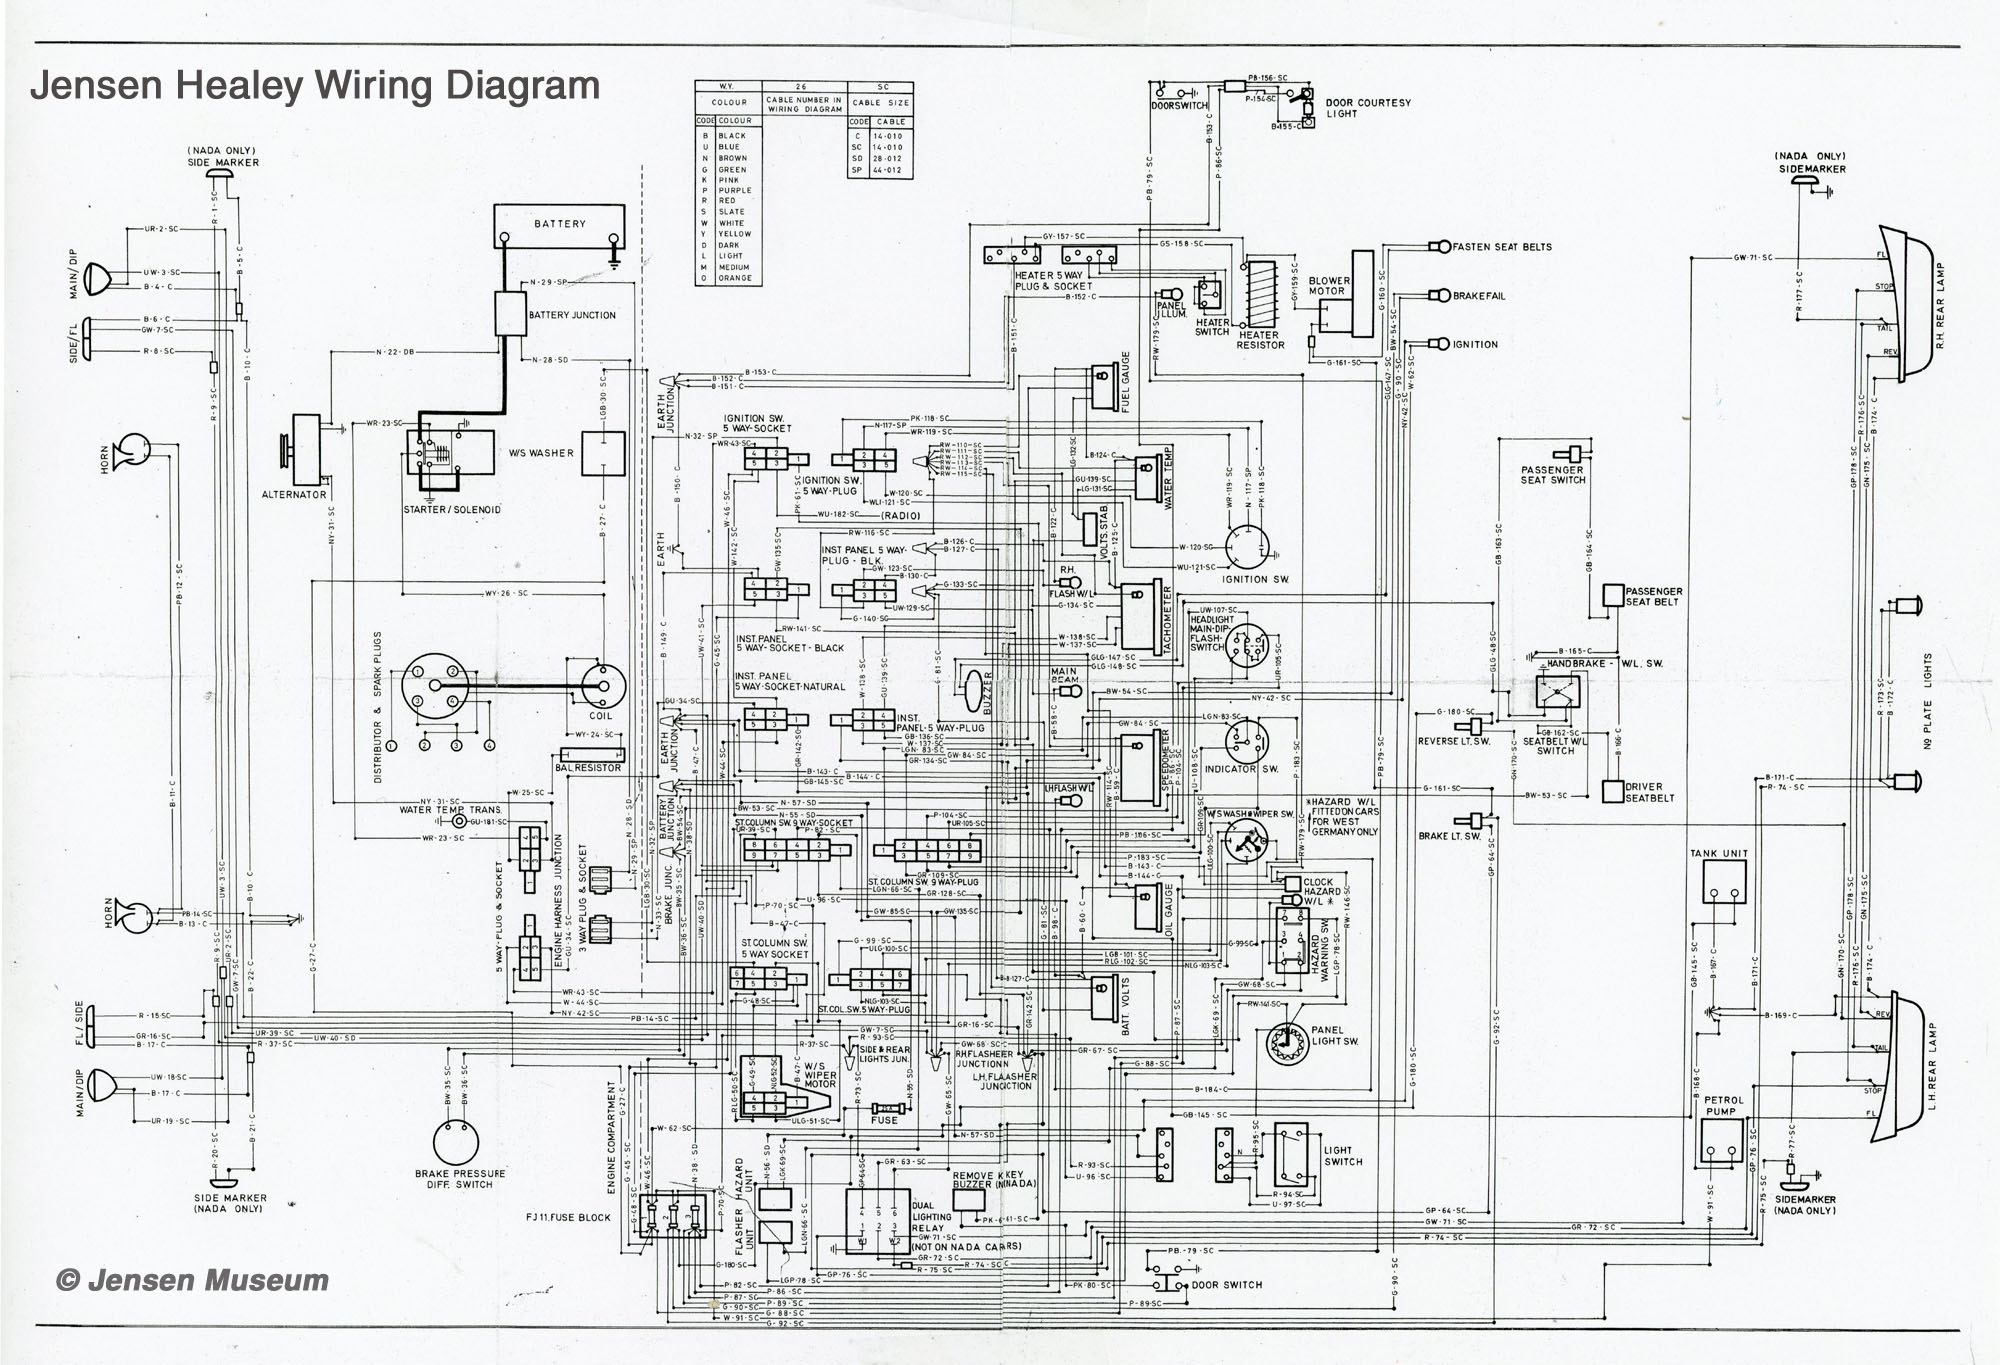 jensen healey wiring diagram the jensen museum